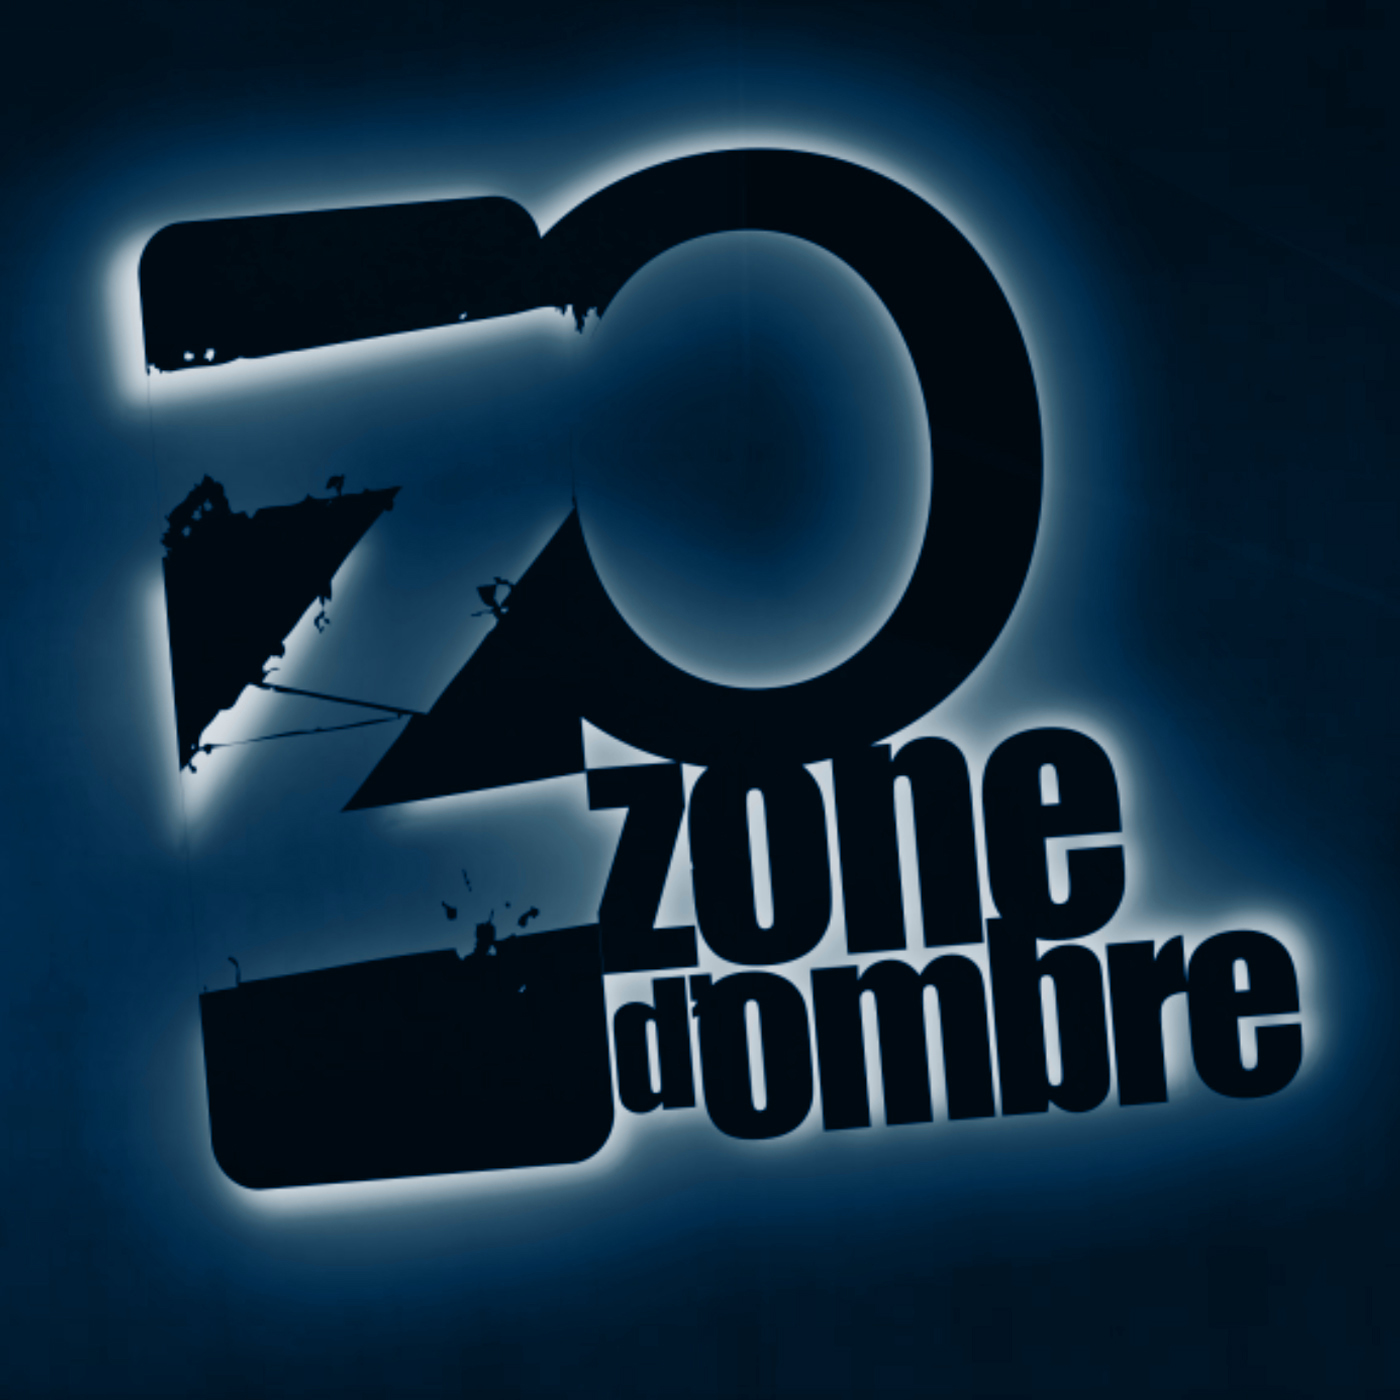 Zone d'ombre - RTS